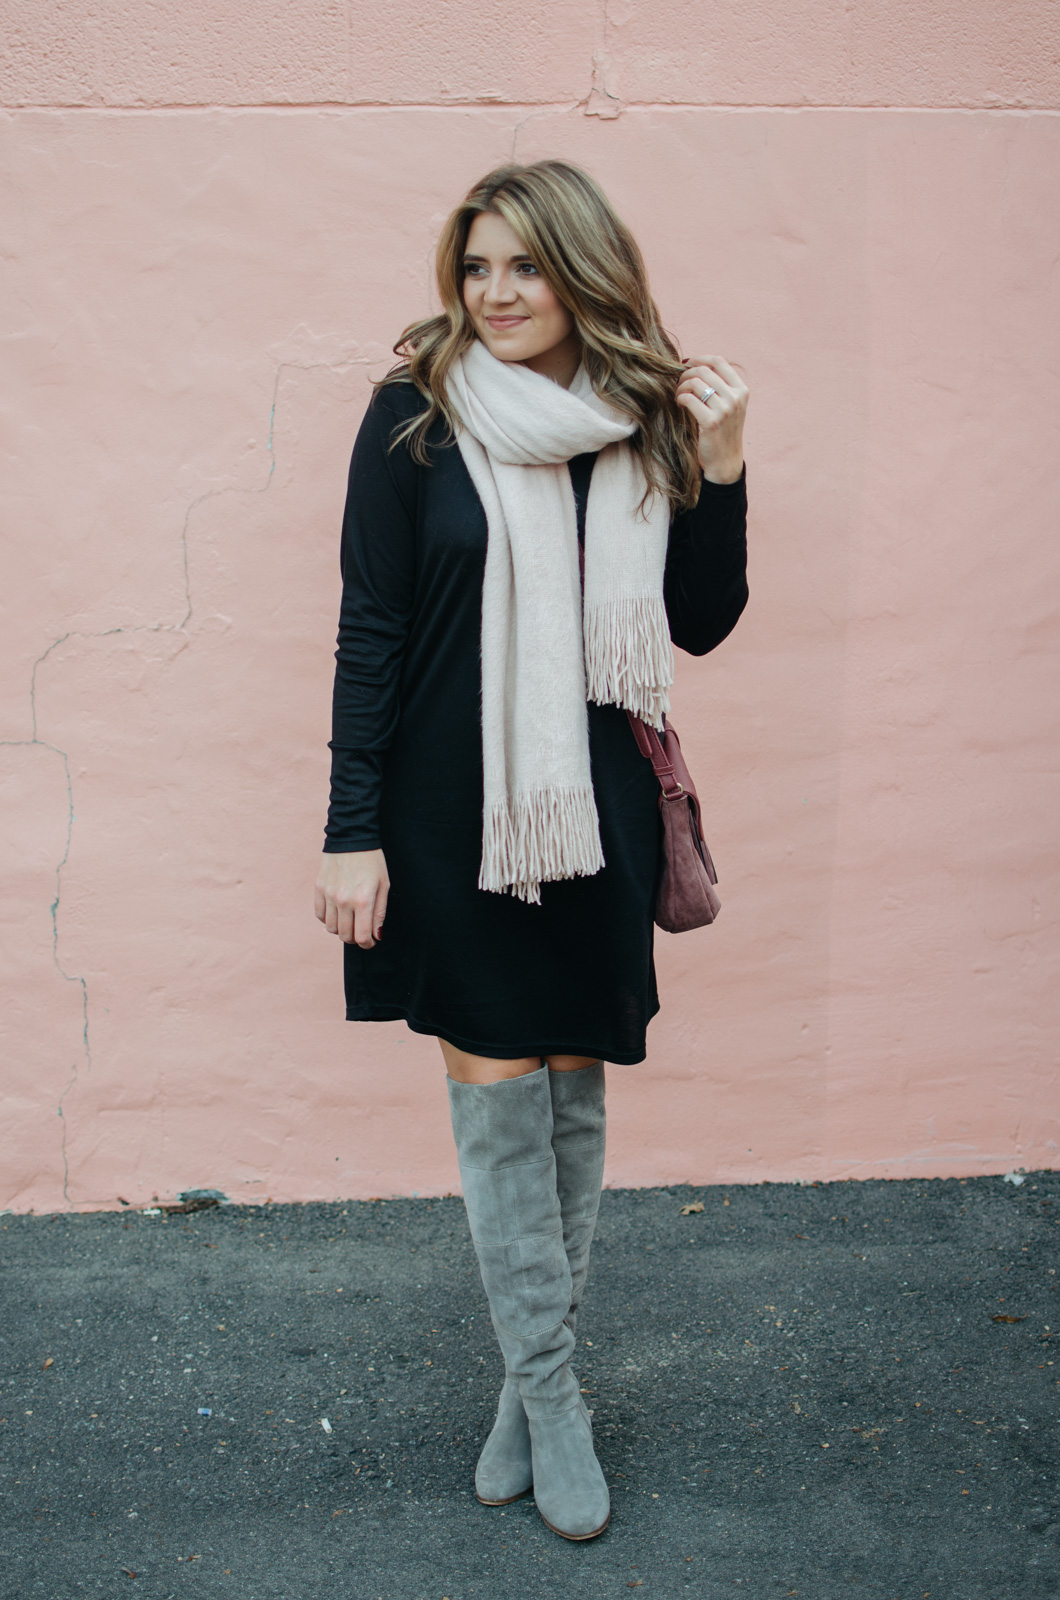 winter dress outfit - blush scarf outfit | Click through for outfit details or to see more cute Winter outfit ideas. bylaurenm.com